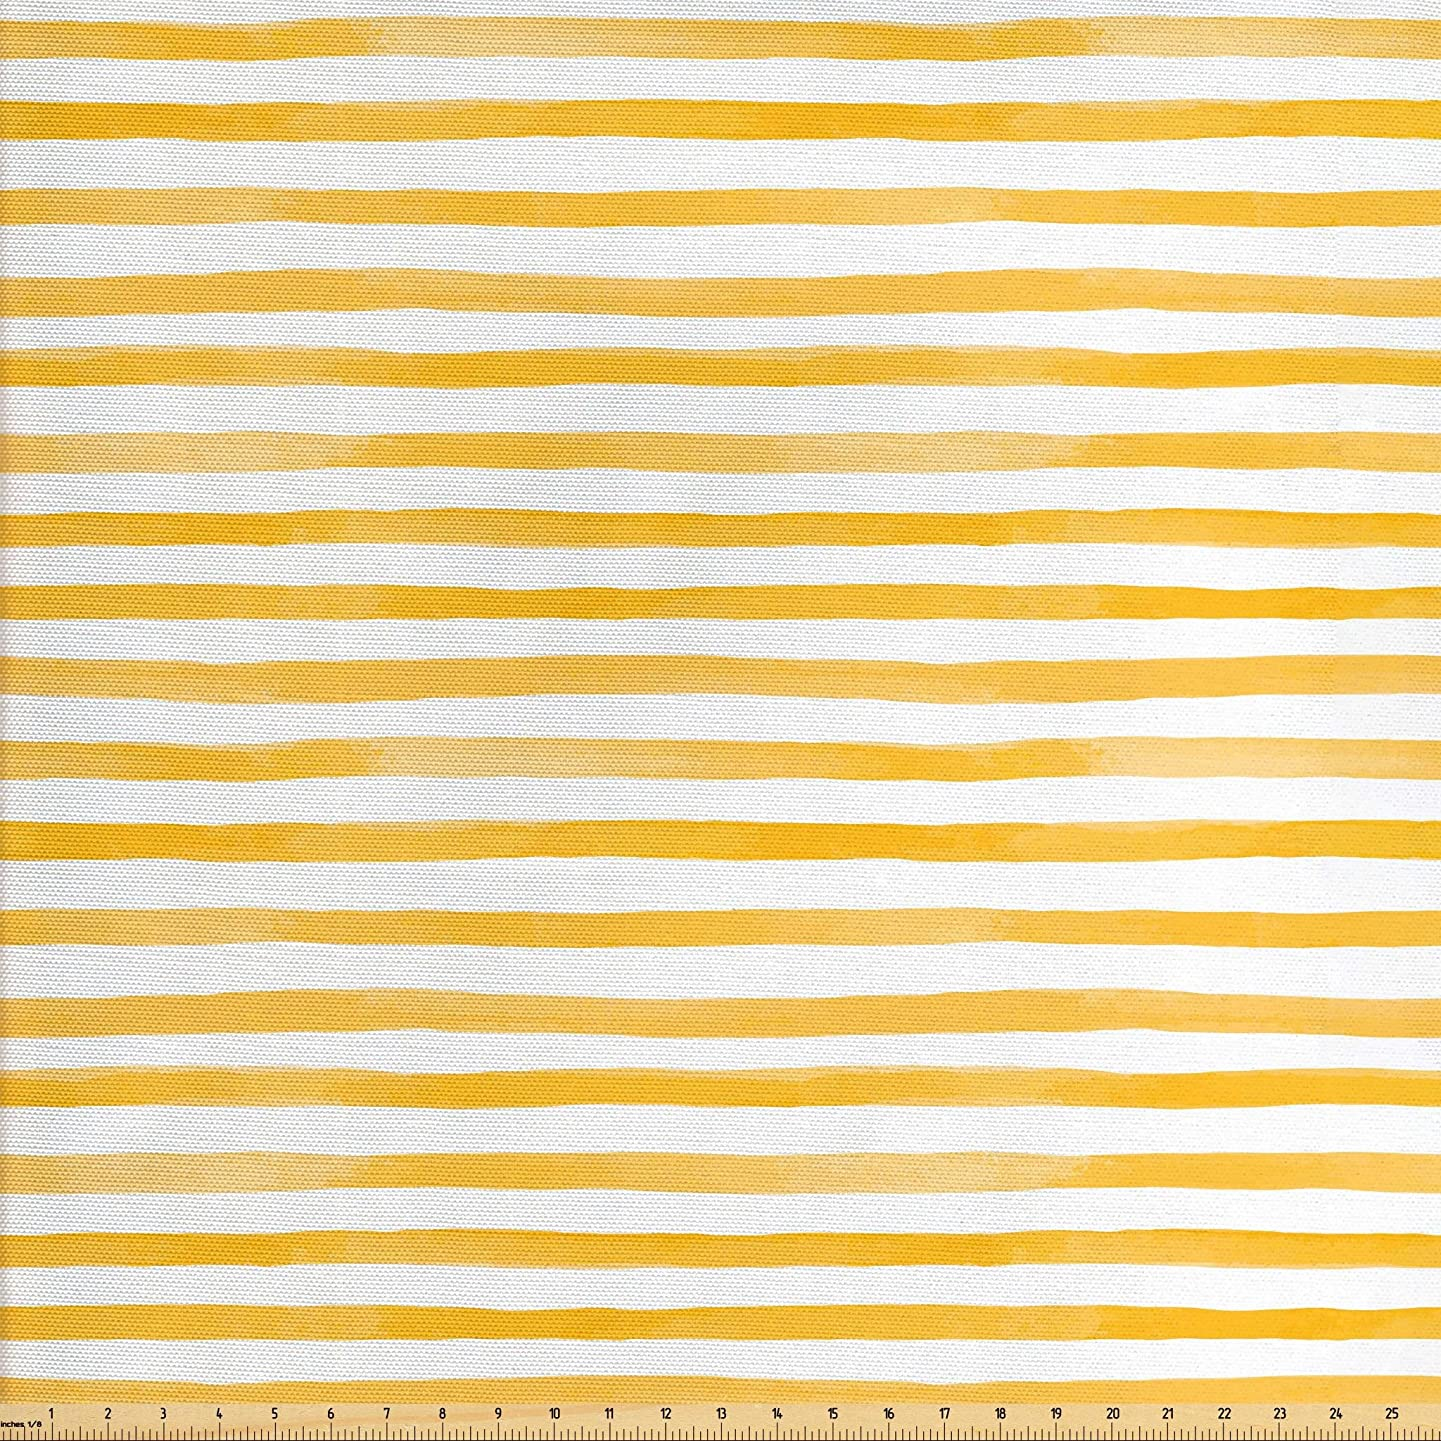 Lunarable Striped Fabric by The Yard, Watercolor Style Uneven Stripes Pattern with Yellow Shades Pastel Tone Print, Decorative Fabric for Upholstery and Home Accents, 1 Yard, Mustard White